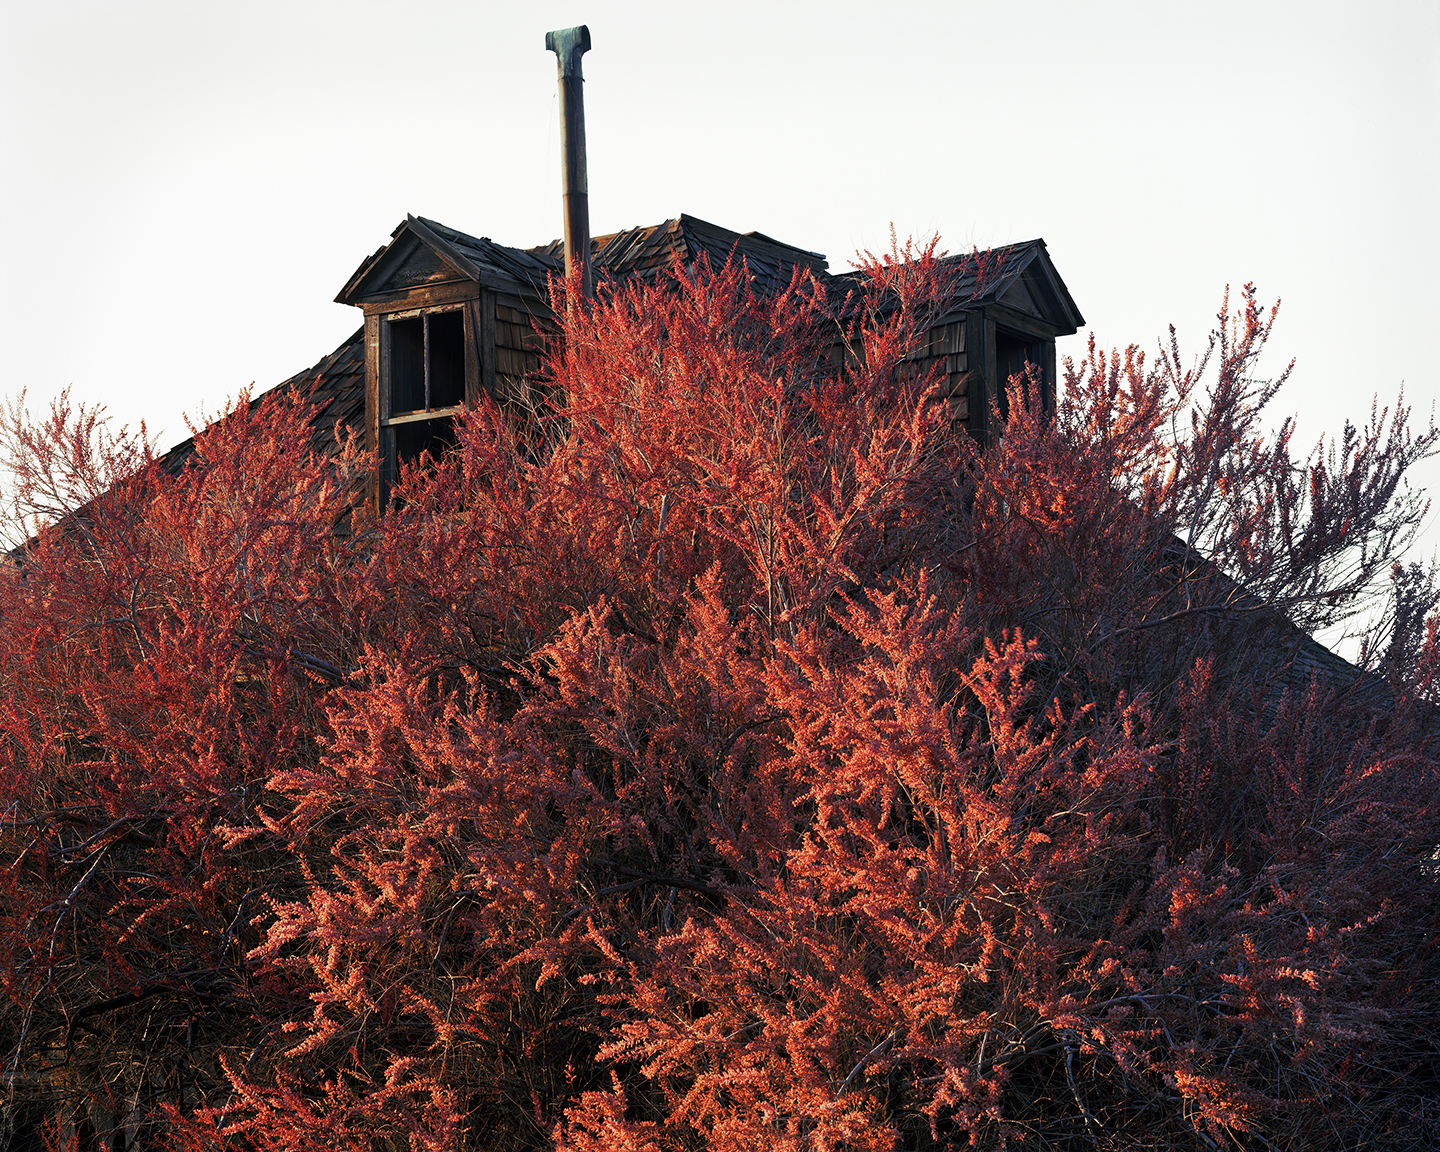 Blooming+Tamarisk+(in+the+town+where+my+great-grandmother+died),+Goldfield,+Nevada,+2015.jpg